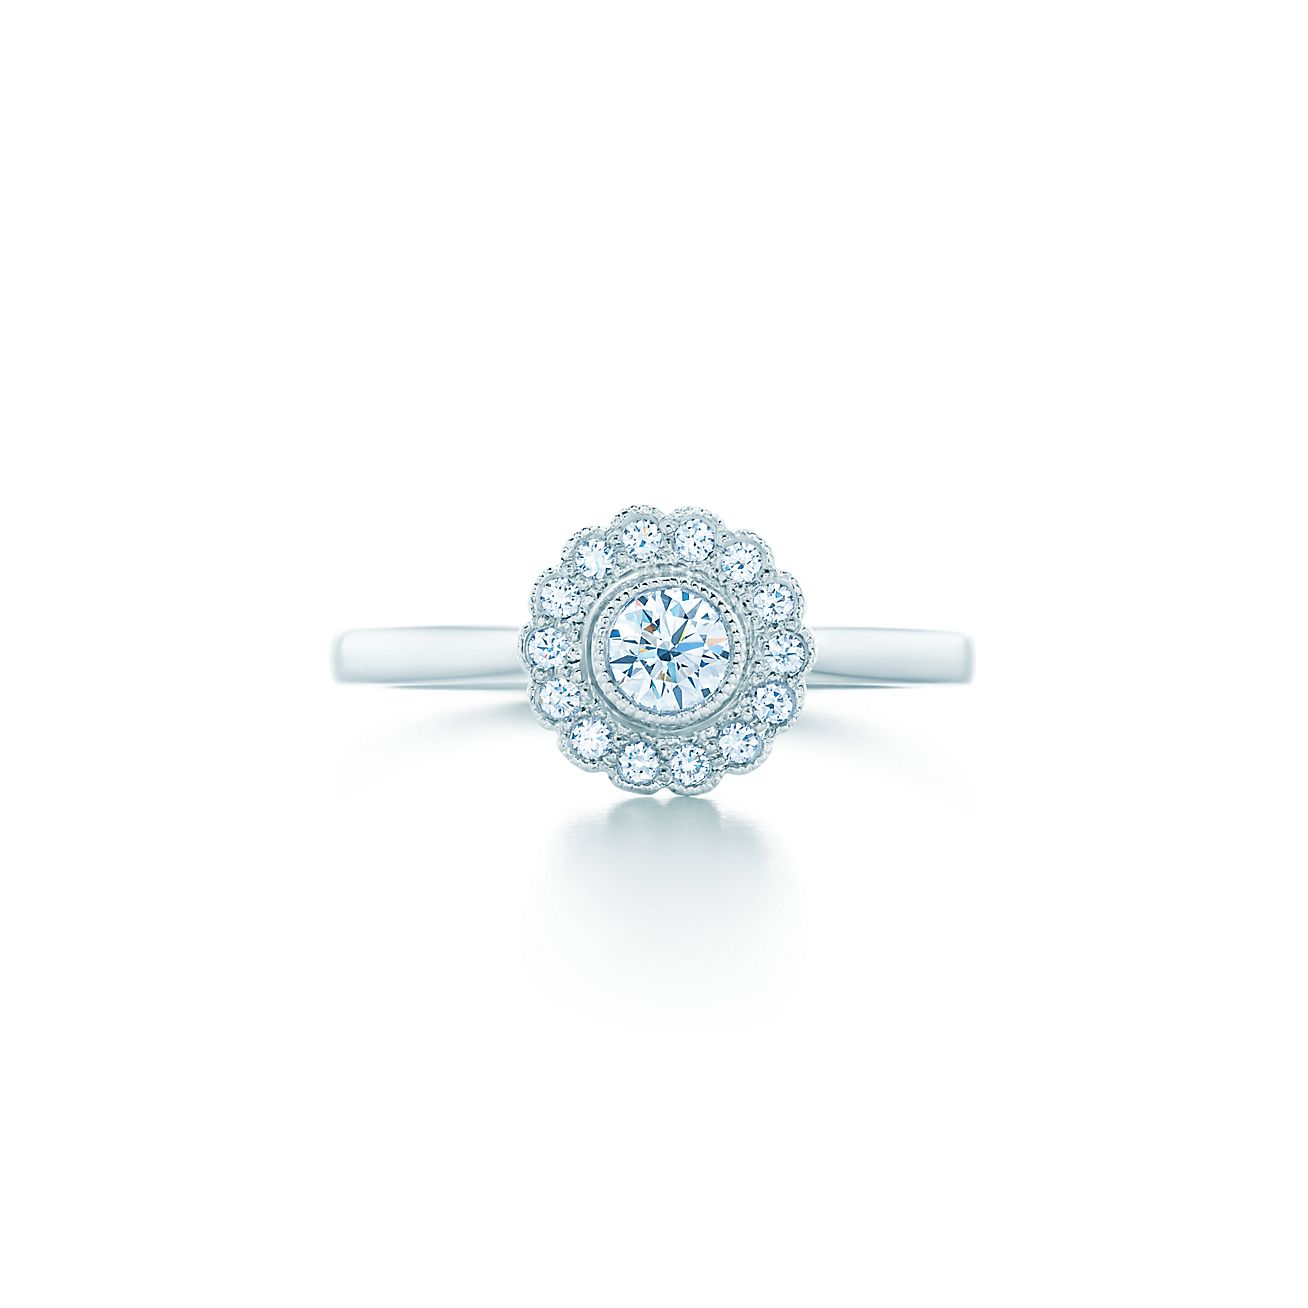 Tiffany Enchant™ flower ring in platinum with round brilliant diamonds Carat